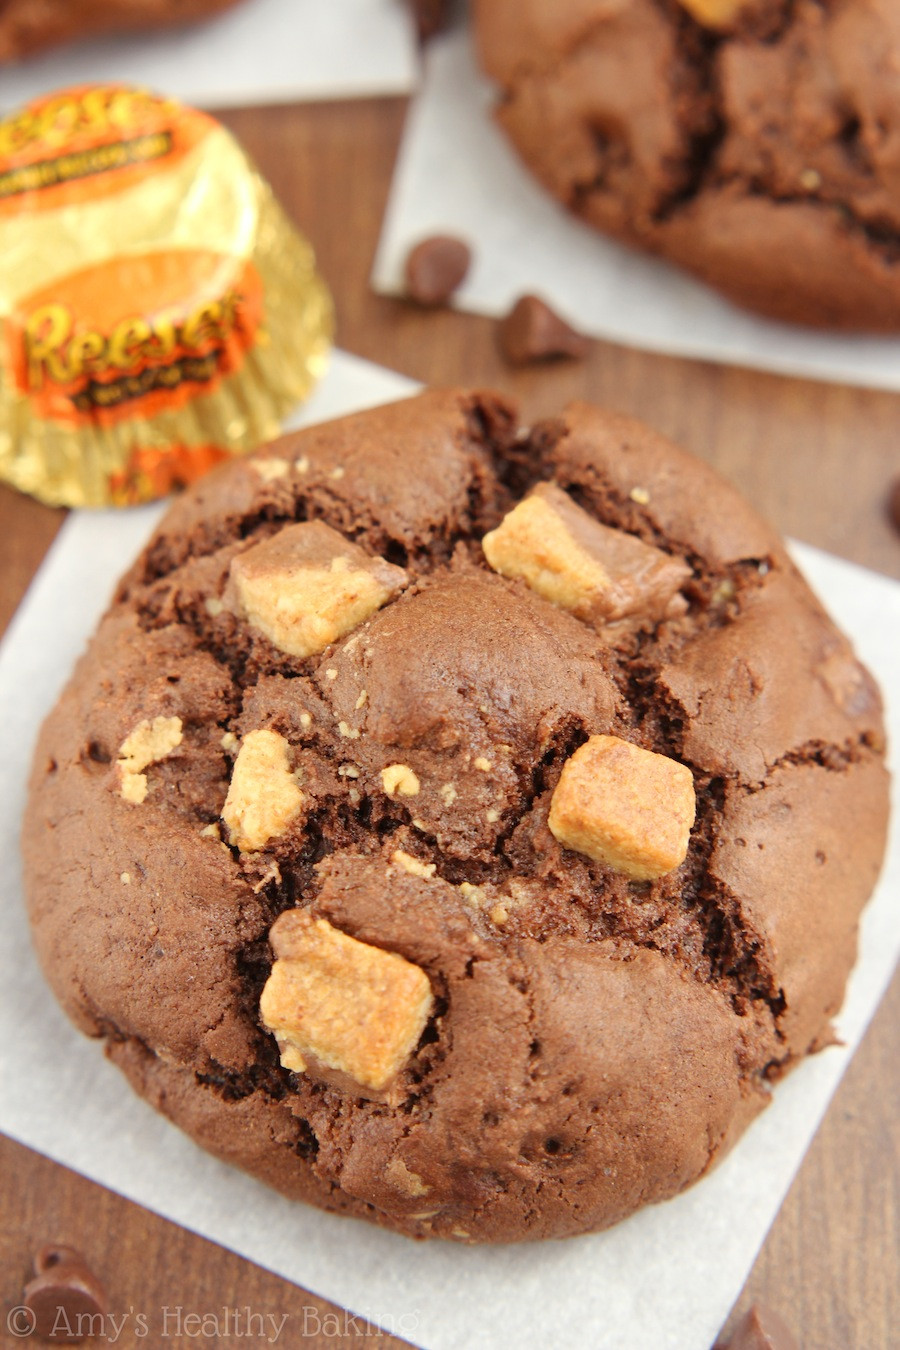 Peanut Butter Cup Cookies  Peanut Butter Cup Chocolate Cookies